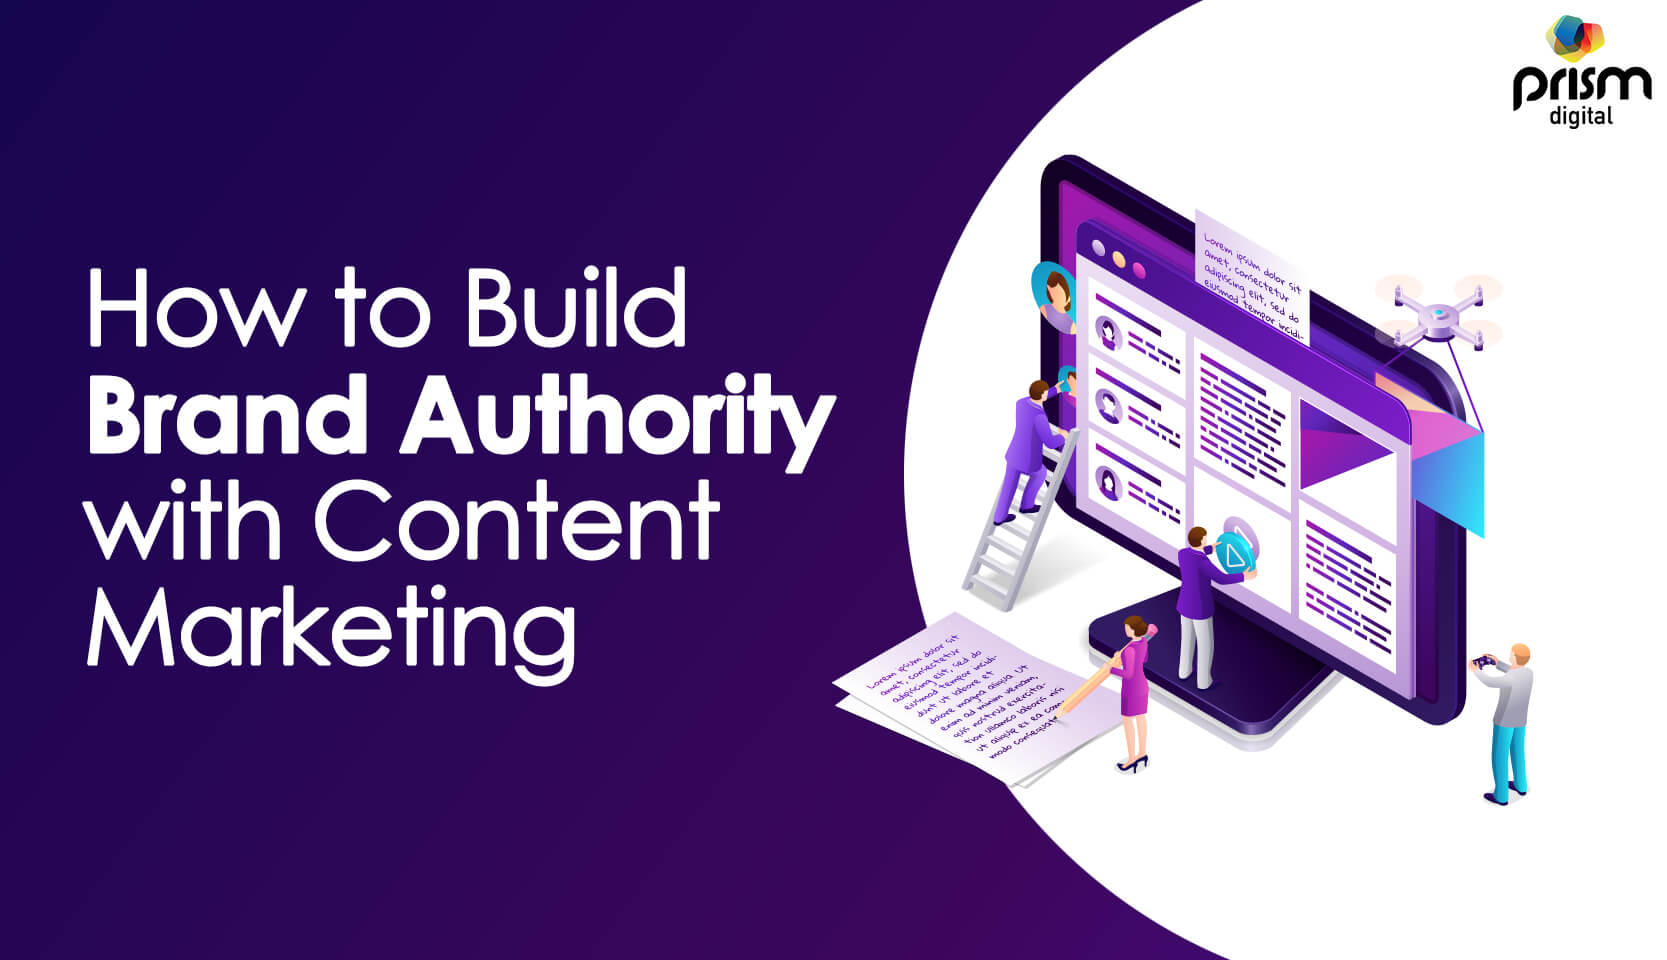 How To Build Brand Authority With Content Marketing